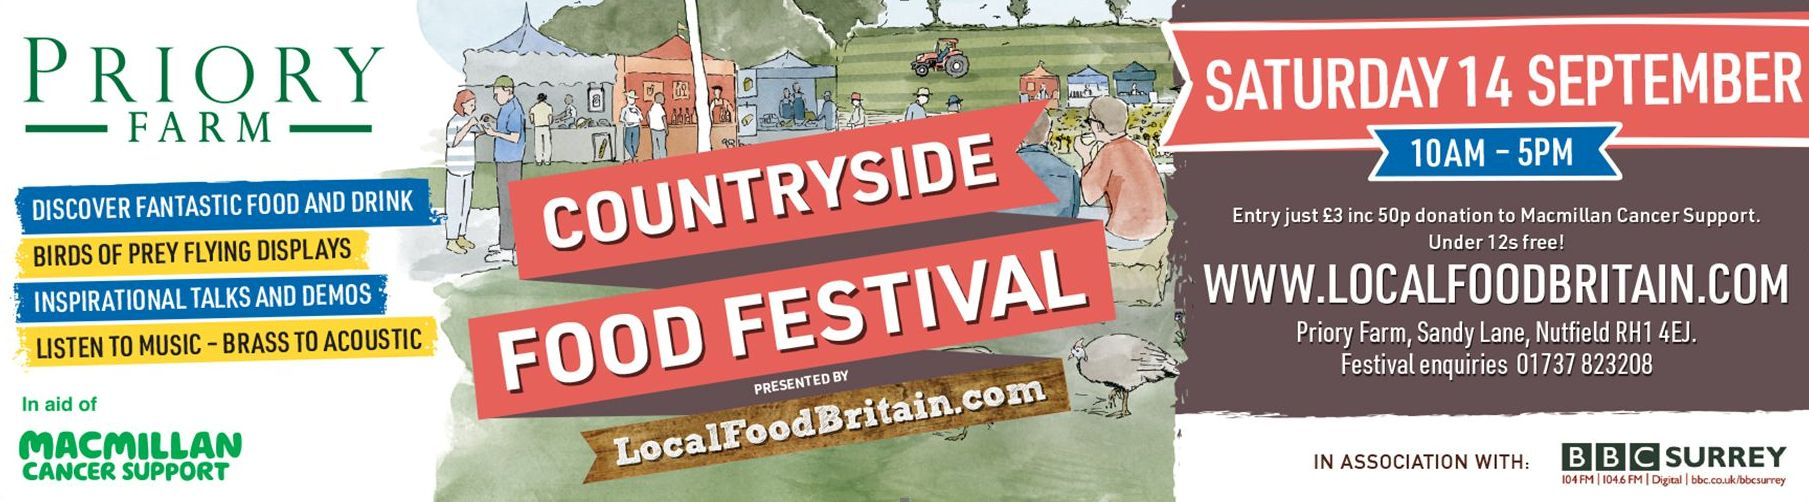 Local Food Britain's Countryside Food Festival